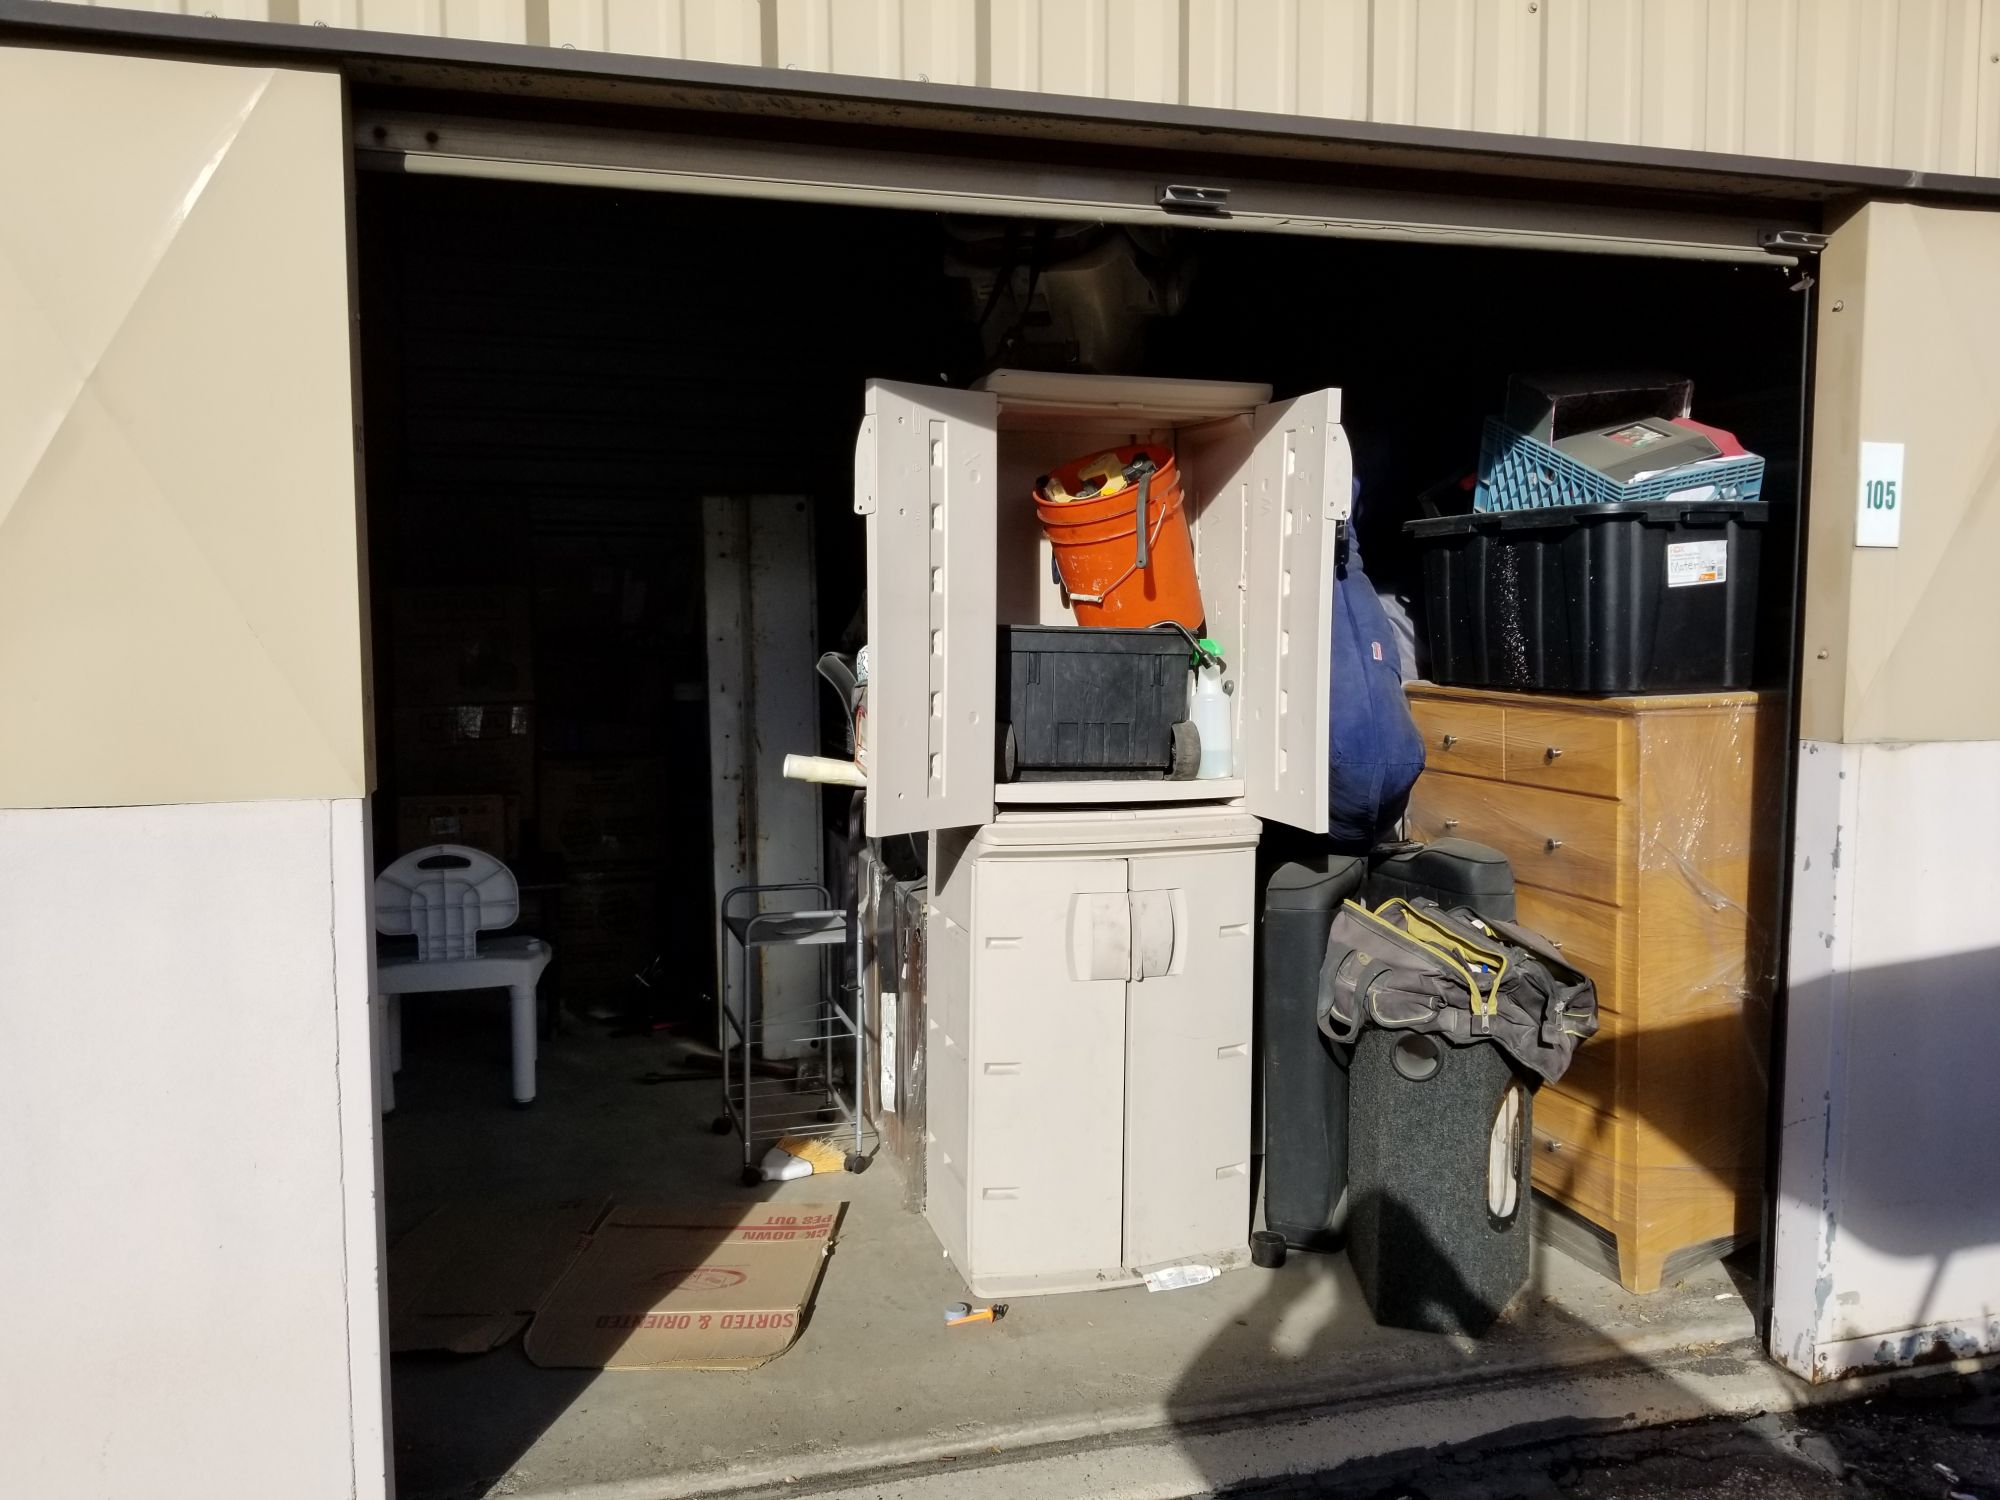 Storage Units Taylorsville Ut Ppi Blog & Storage Unit Auctions Utah - Listitdallas